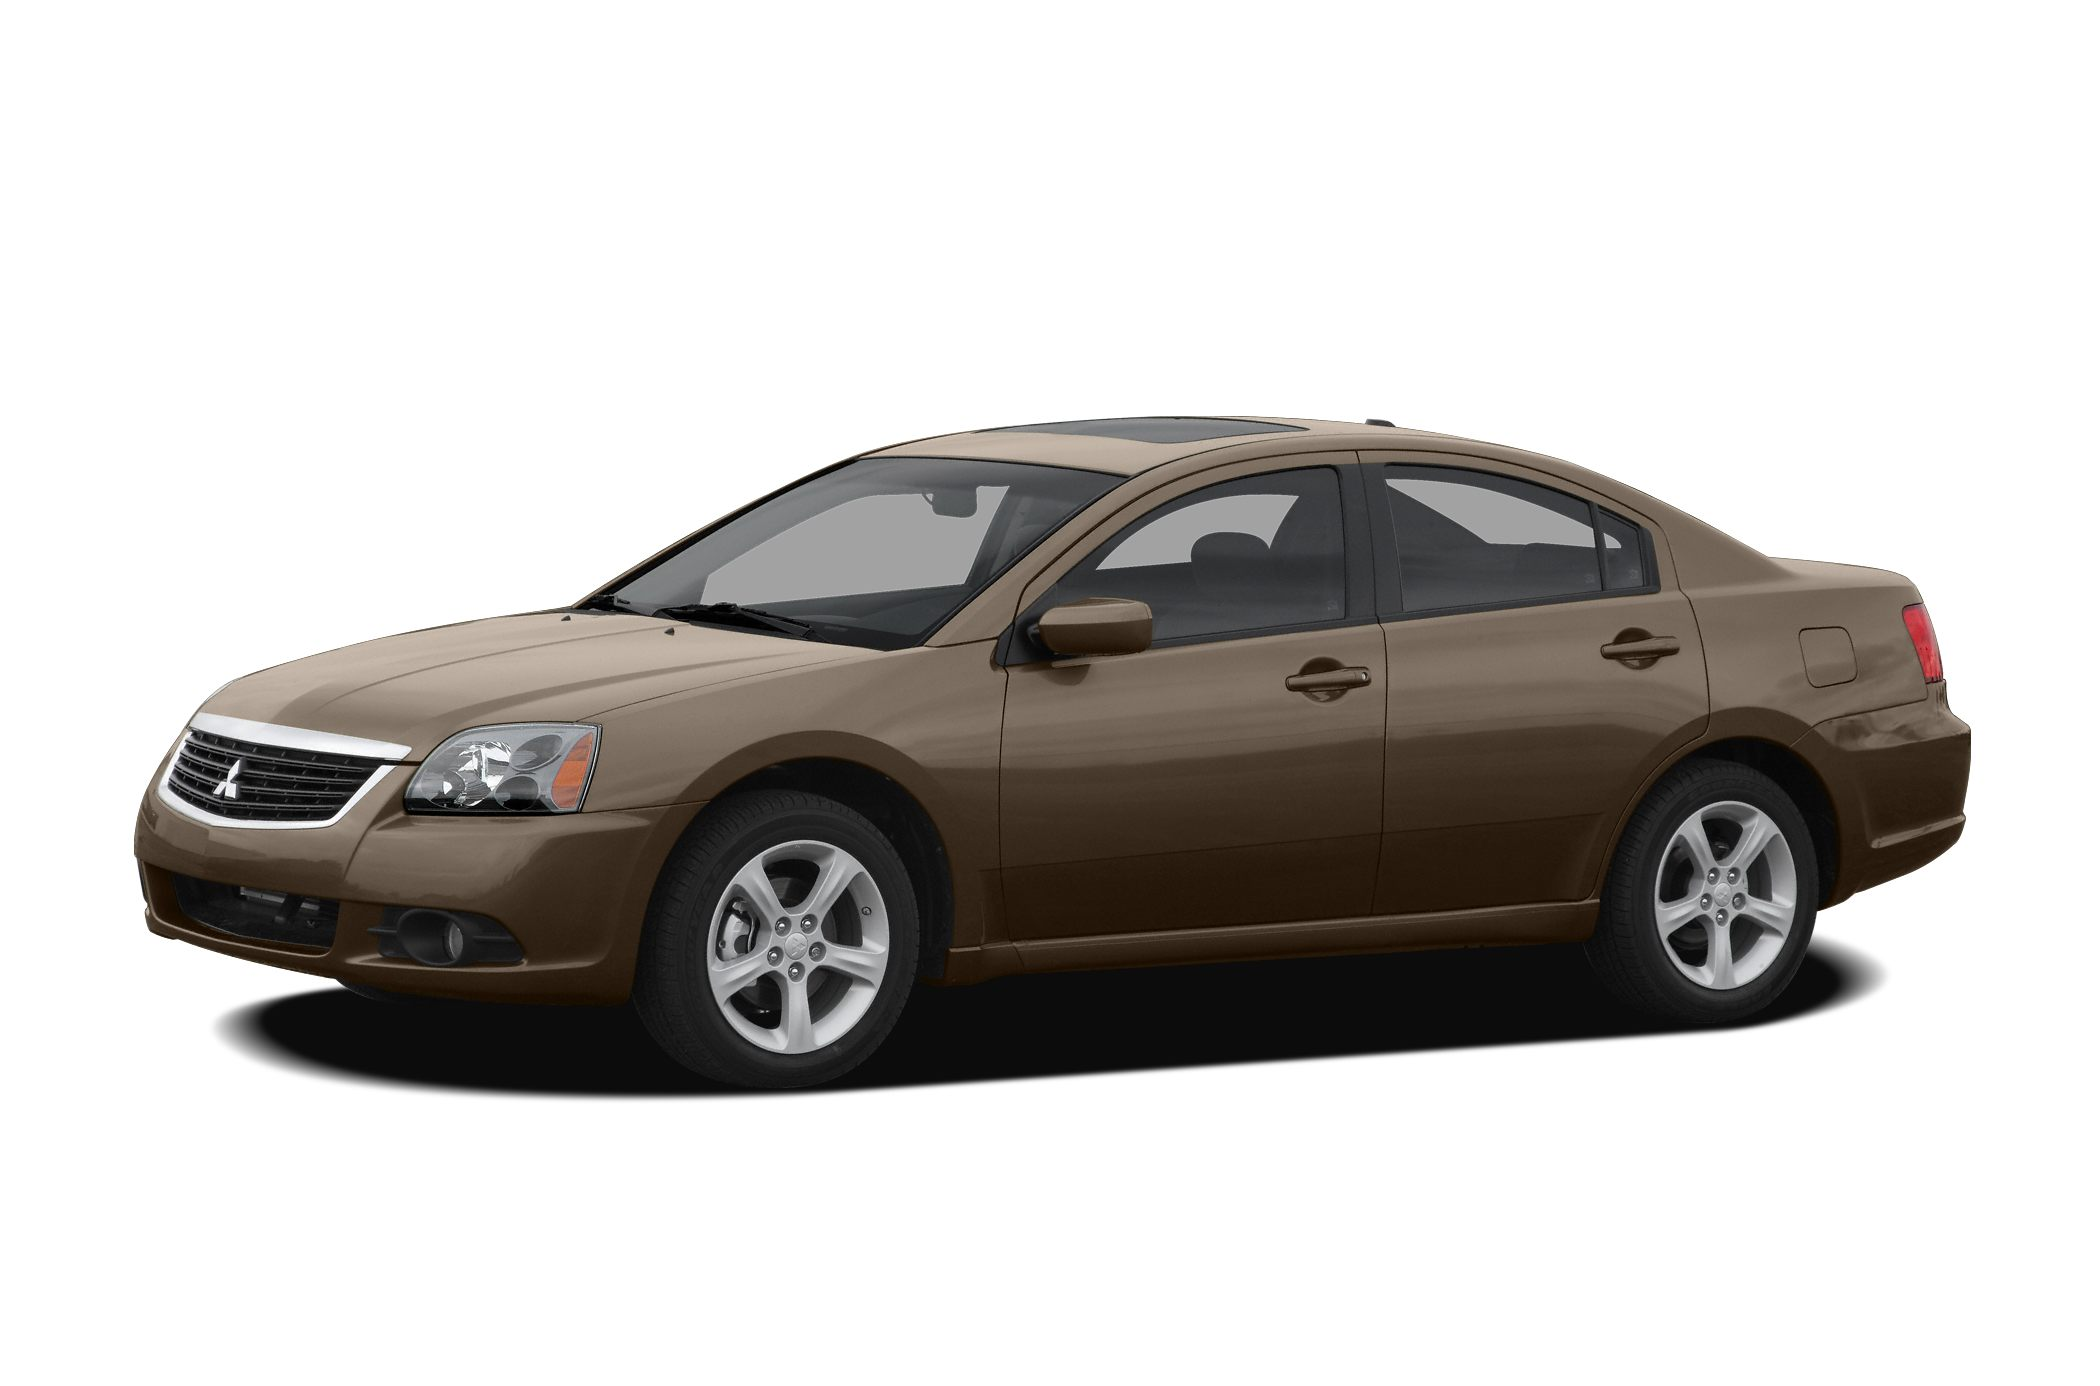 2009 Mitsubishi Galant Sport Edition Sedan for sale in New Port Richey for $8,995 with 89,398 miles